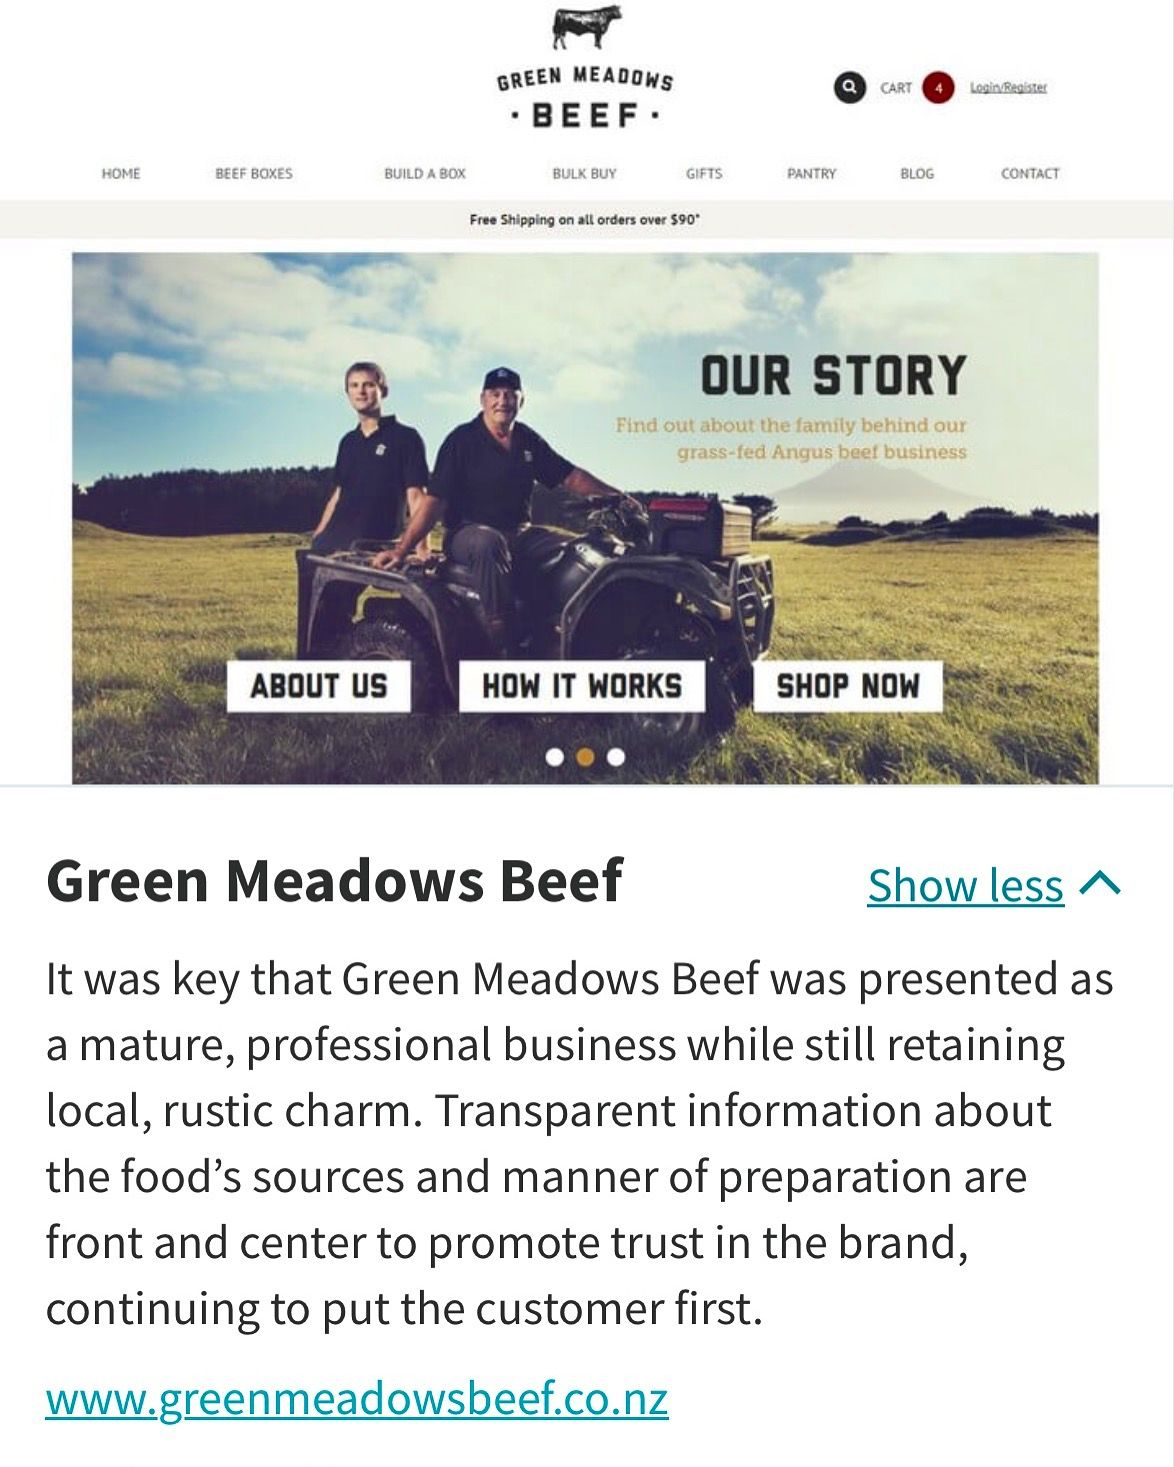 My company, Efinity, Green Meadows Beef website has made it to the Kentico global top three for 2016 in the best E-Commerce category. Rubbing shoulders with giants like Microsoft and DHL💪🏽 Take a peek! http://www.kentico.com/customers/site-of-the-year/site-of-the-year-2016/vote-for-the-winners